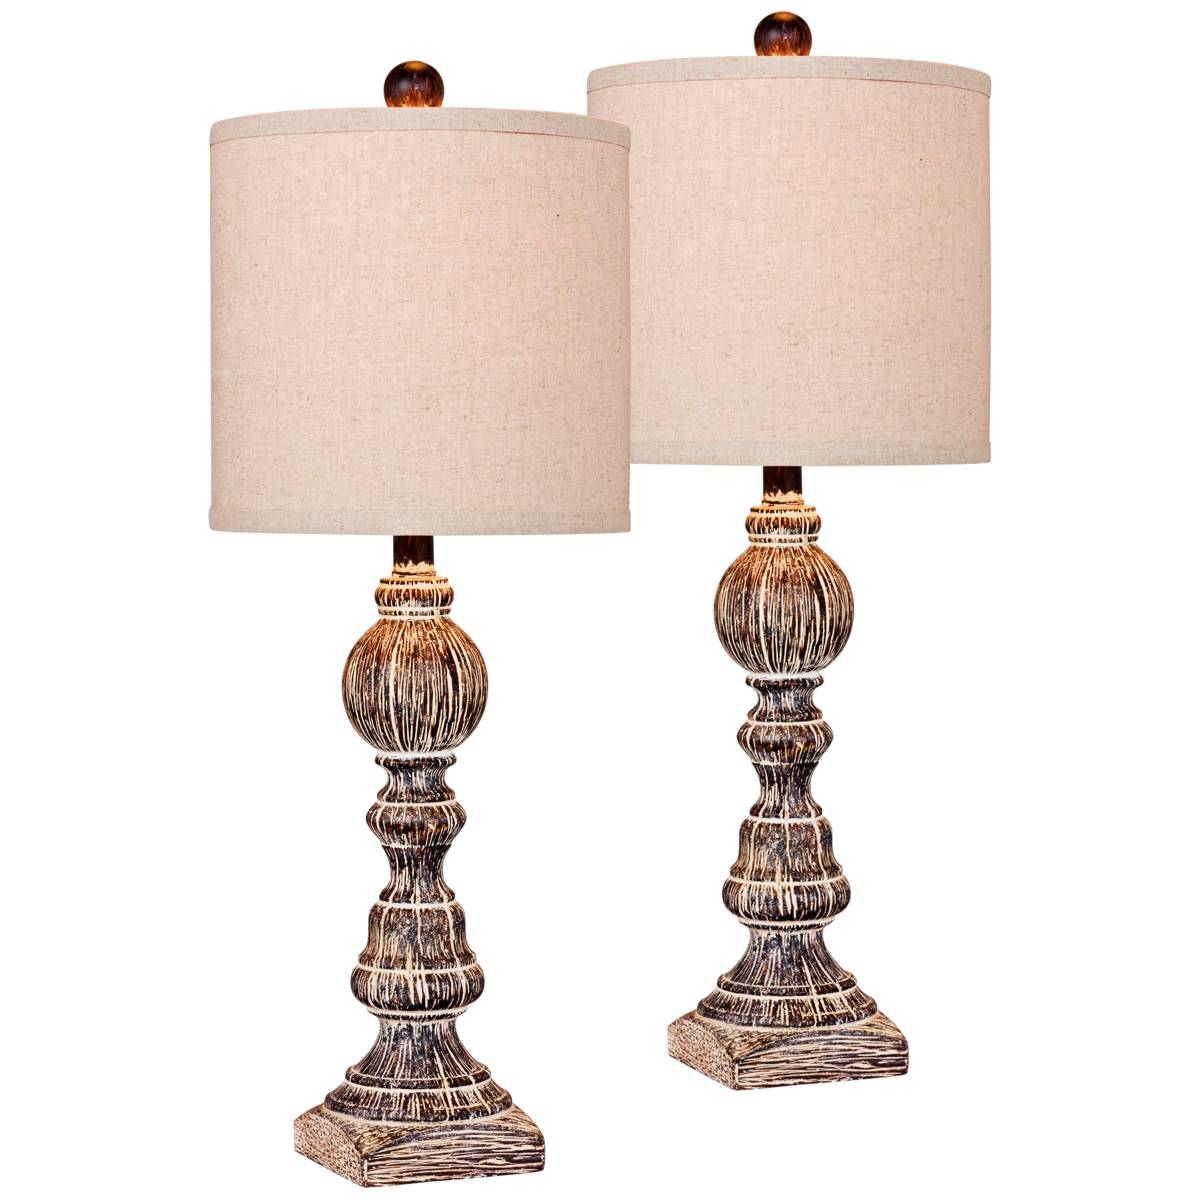 Rustic Table Lamps - Lodge and Cabin Styles - Page 4 ...